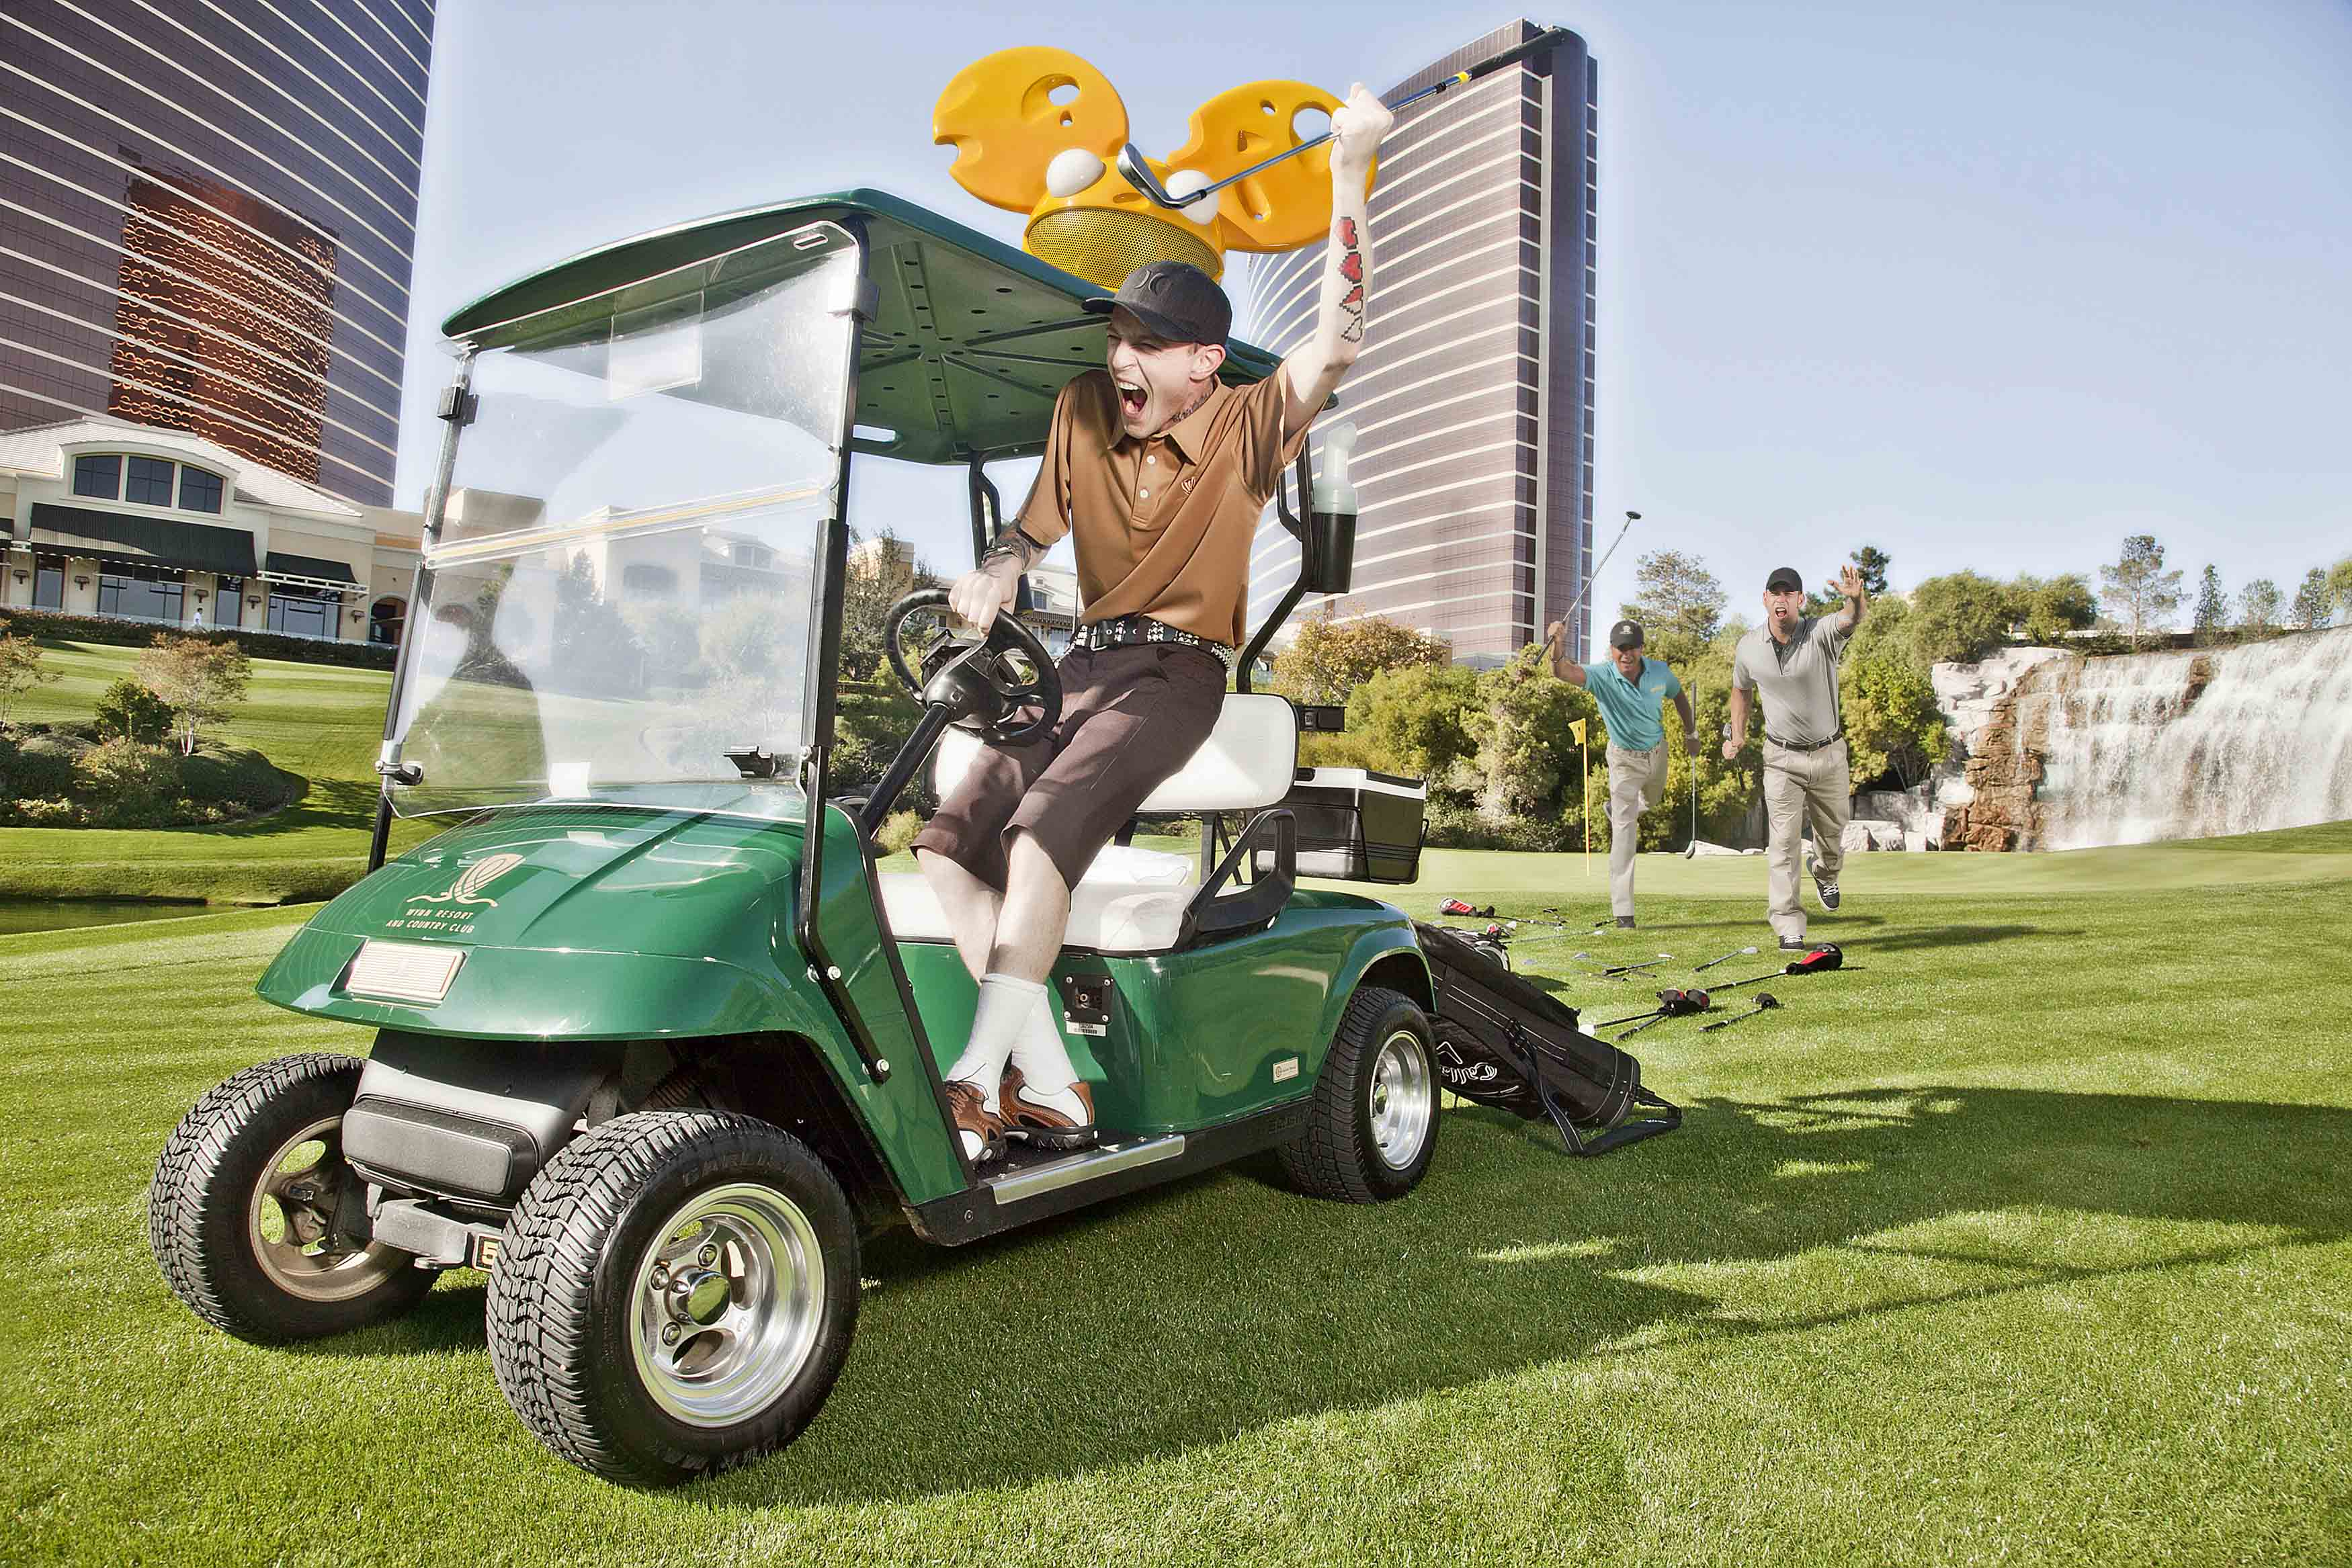 Electronic artist deadmau5 tries his shot as a golf caddie during his job search at Wynn Las Vegas. Deadmau5 has developed an exclusive partnership for 2012 with XS, Encore Beach Club, and Wynn Las Vegas. Photo credit: Brian Brown Photography.